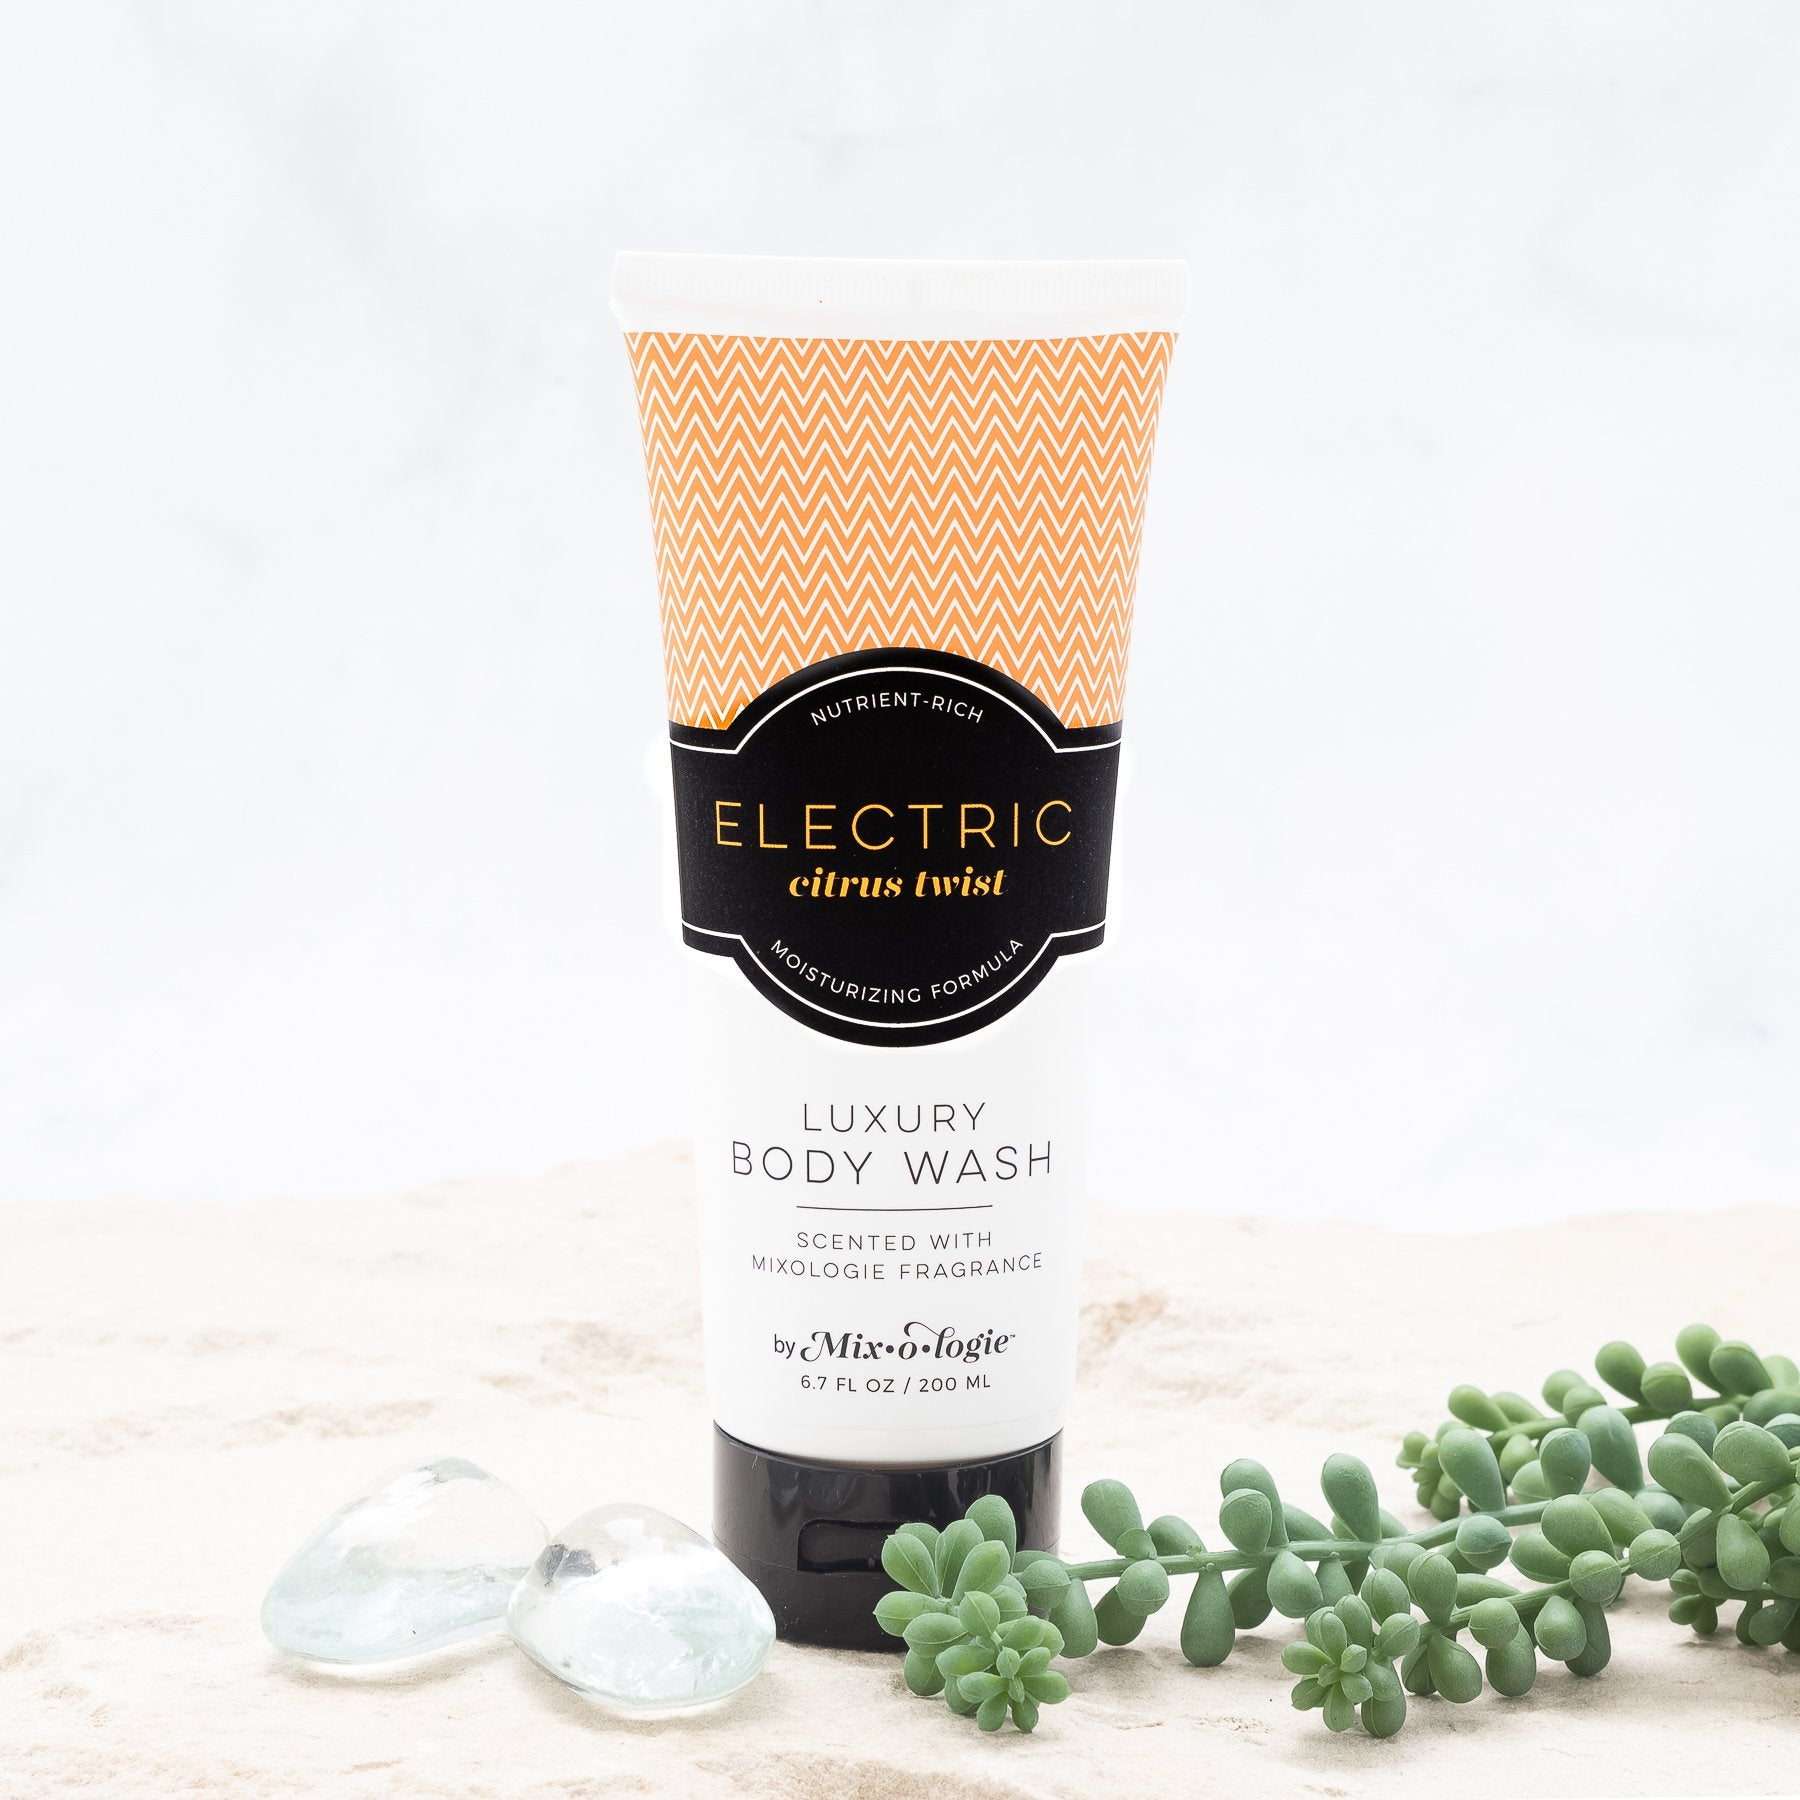 Electric LUXURY BODY WASH & SHOWER GEL